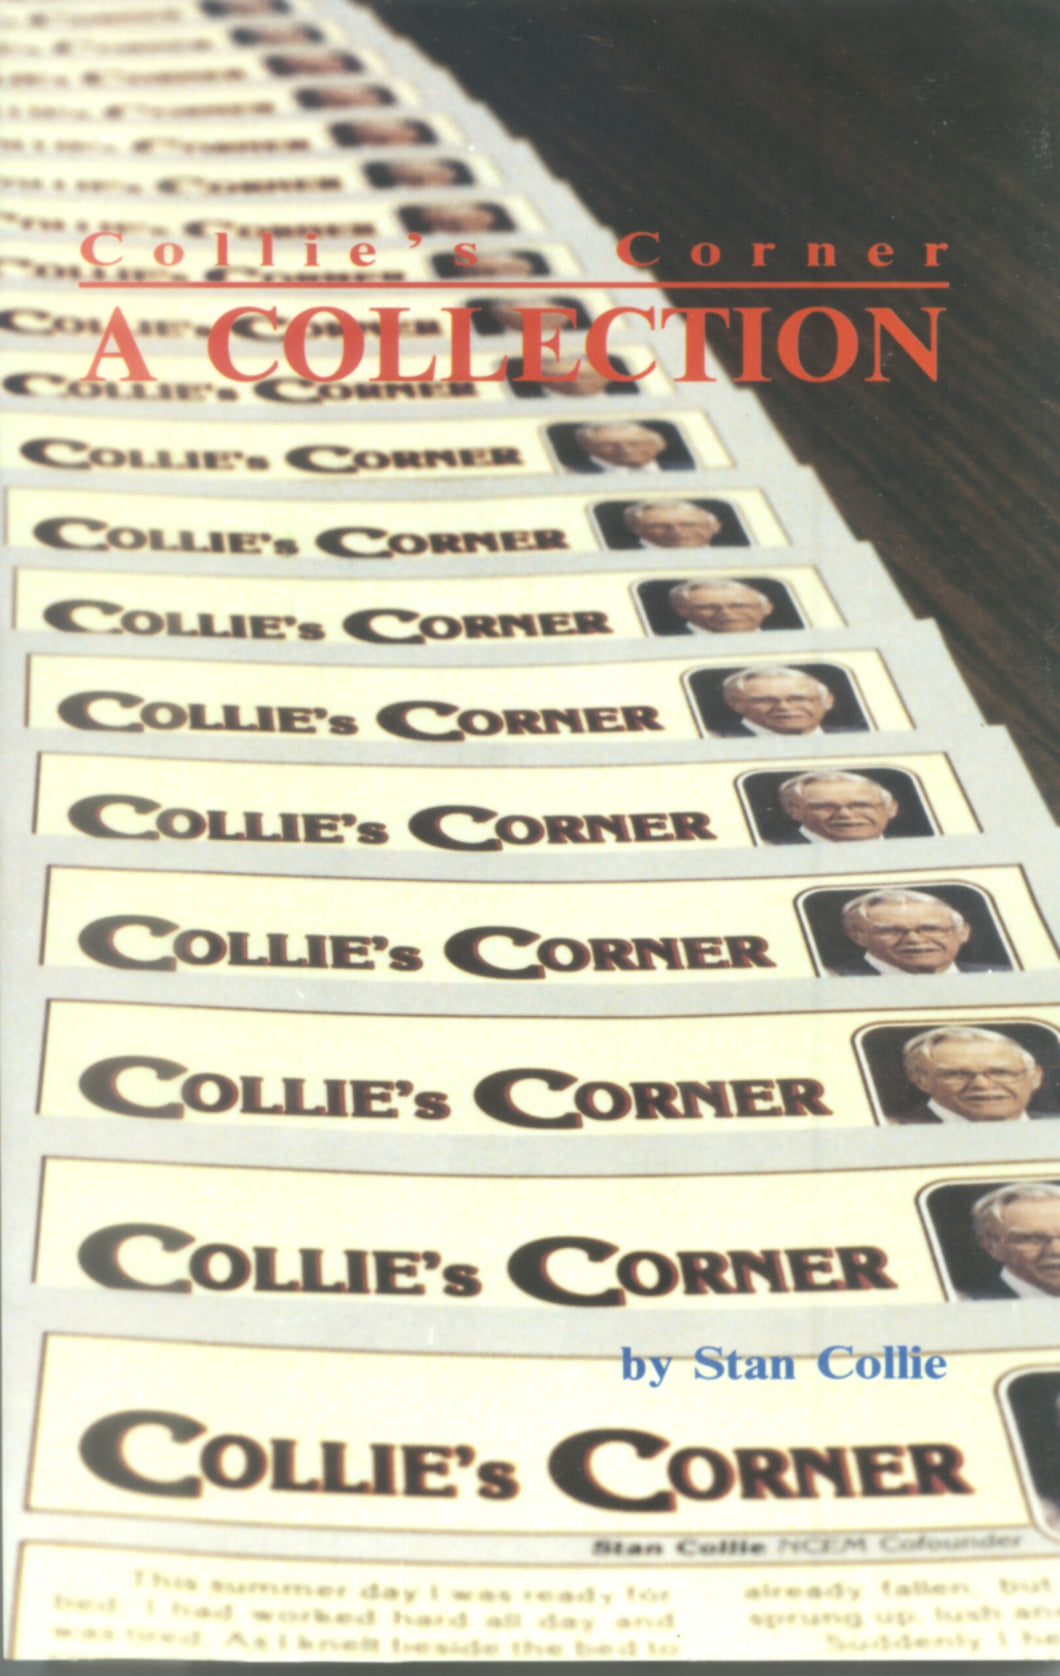 Collie's Corner: A Collection